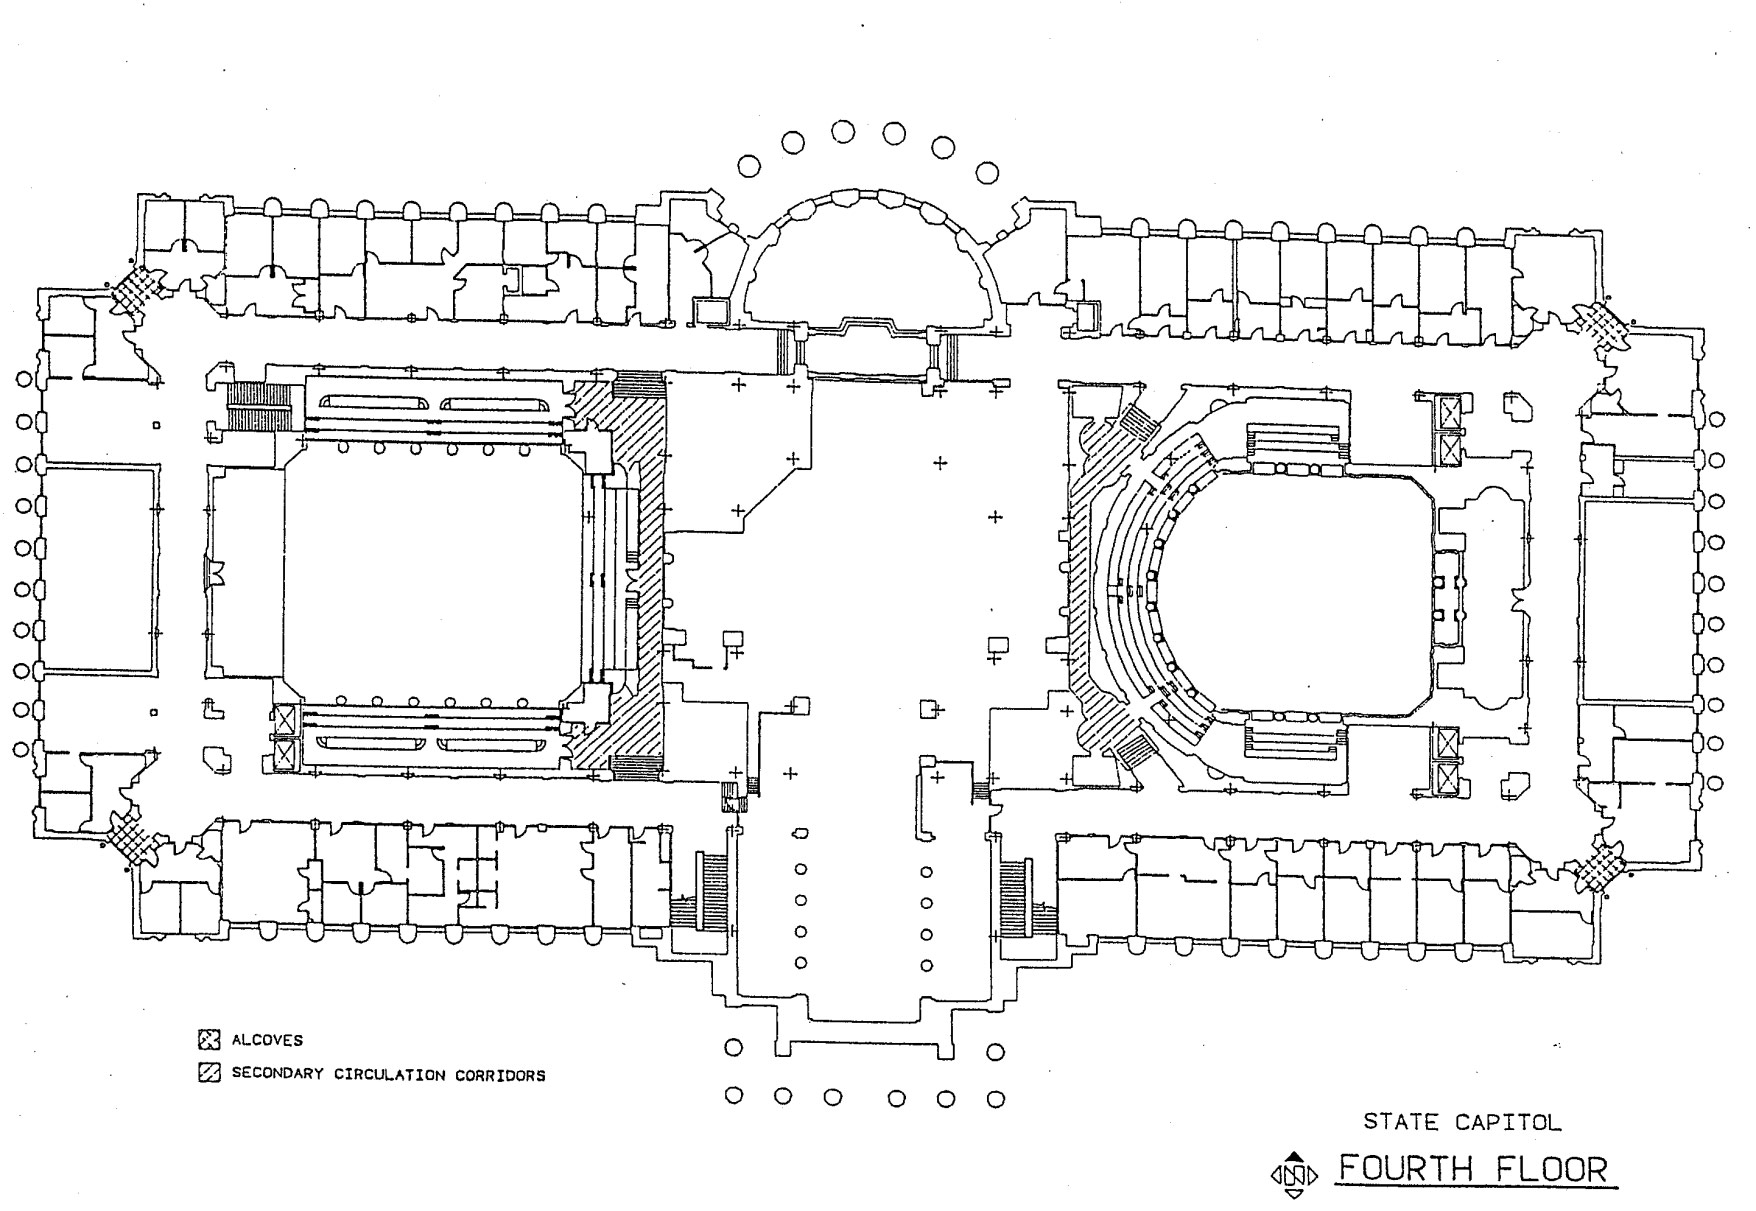 Fourth floor of the Missouri State Capitol map